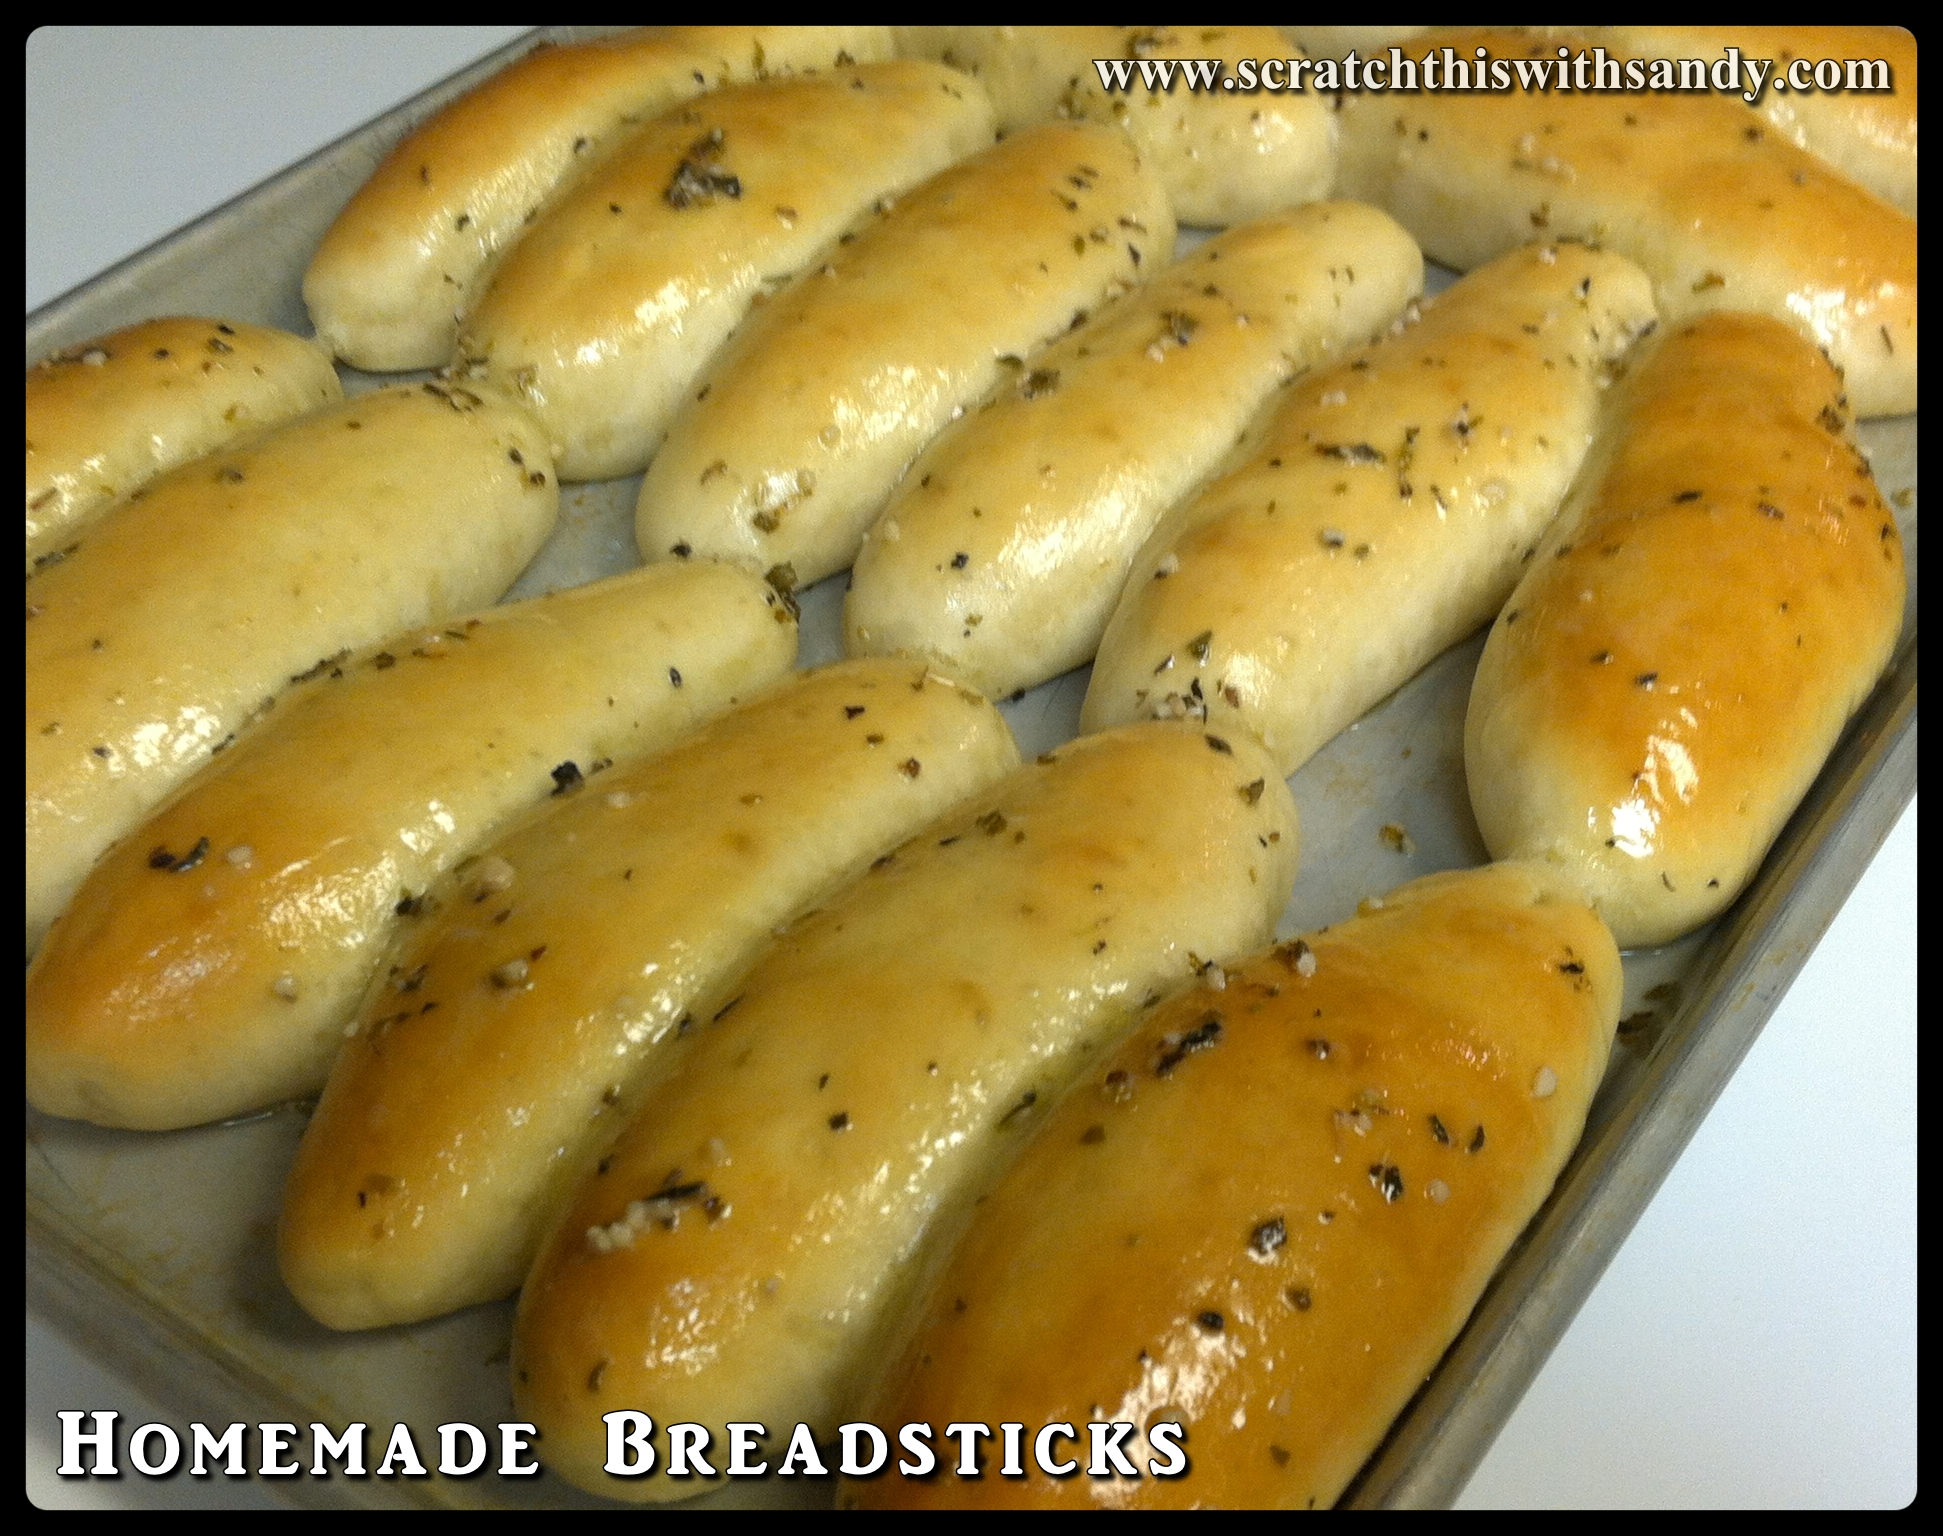 Homemade Breadsticks – Scratch this with Sandy